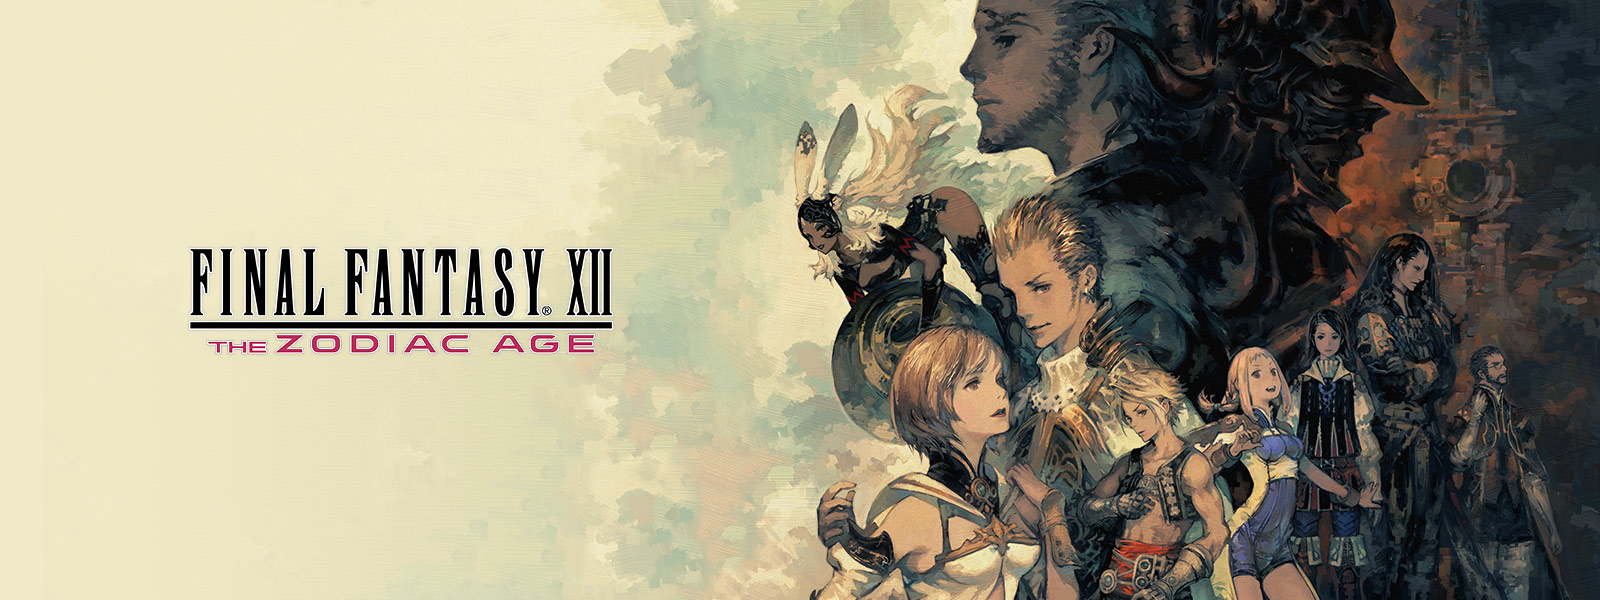 Montagem de personagens do FINAL FANTASY XII THE ZODIAC AGE